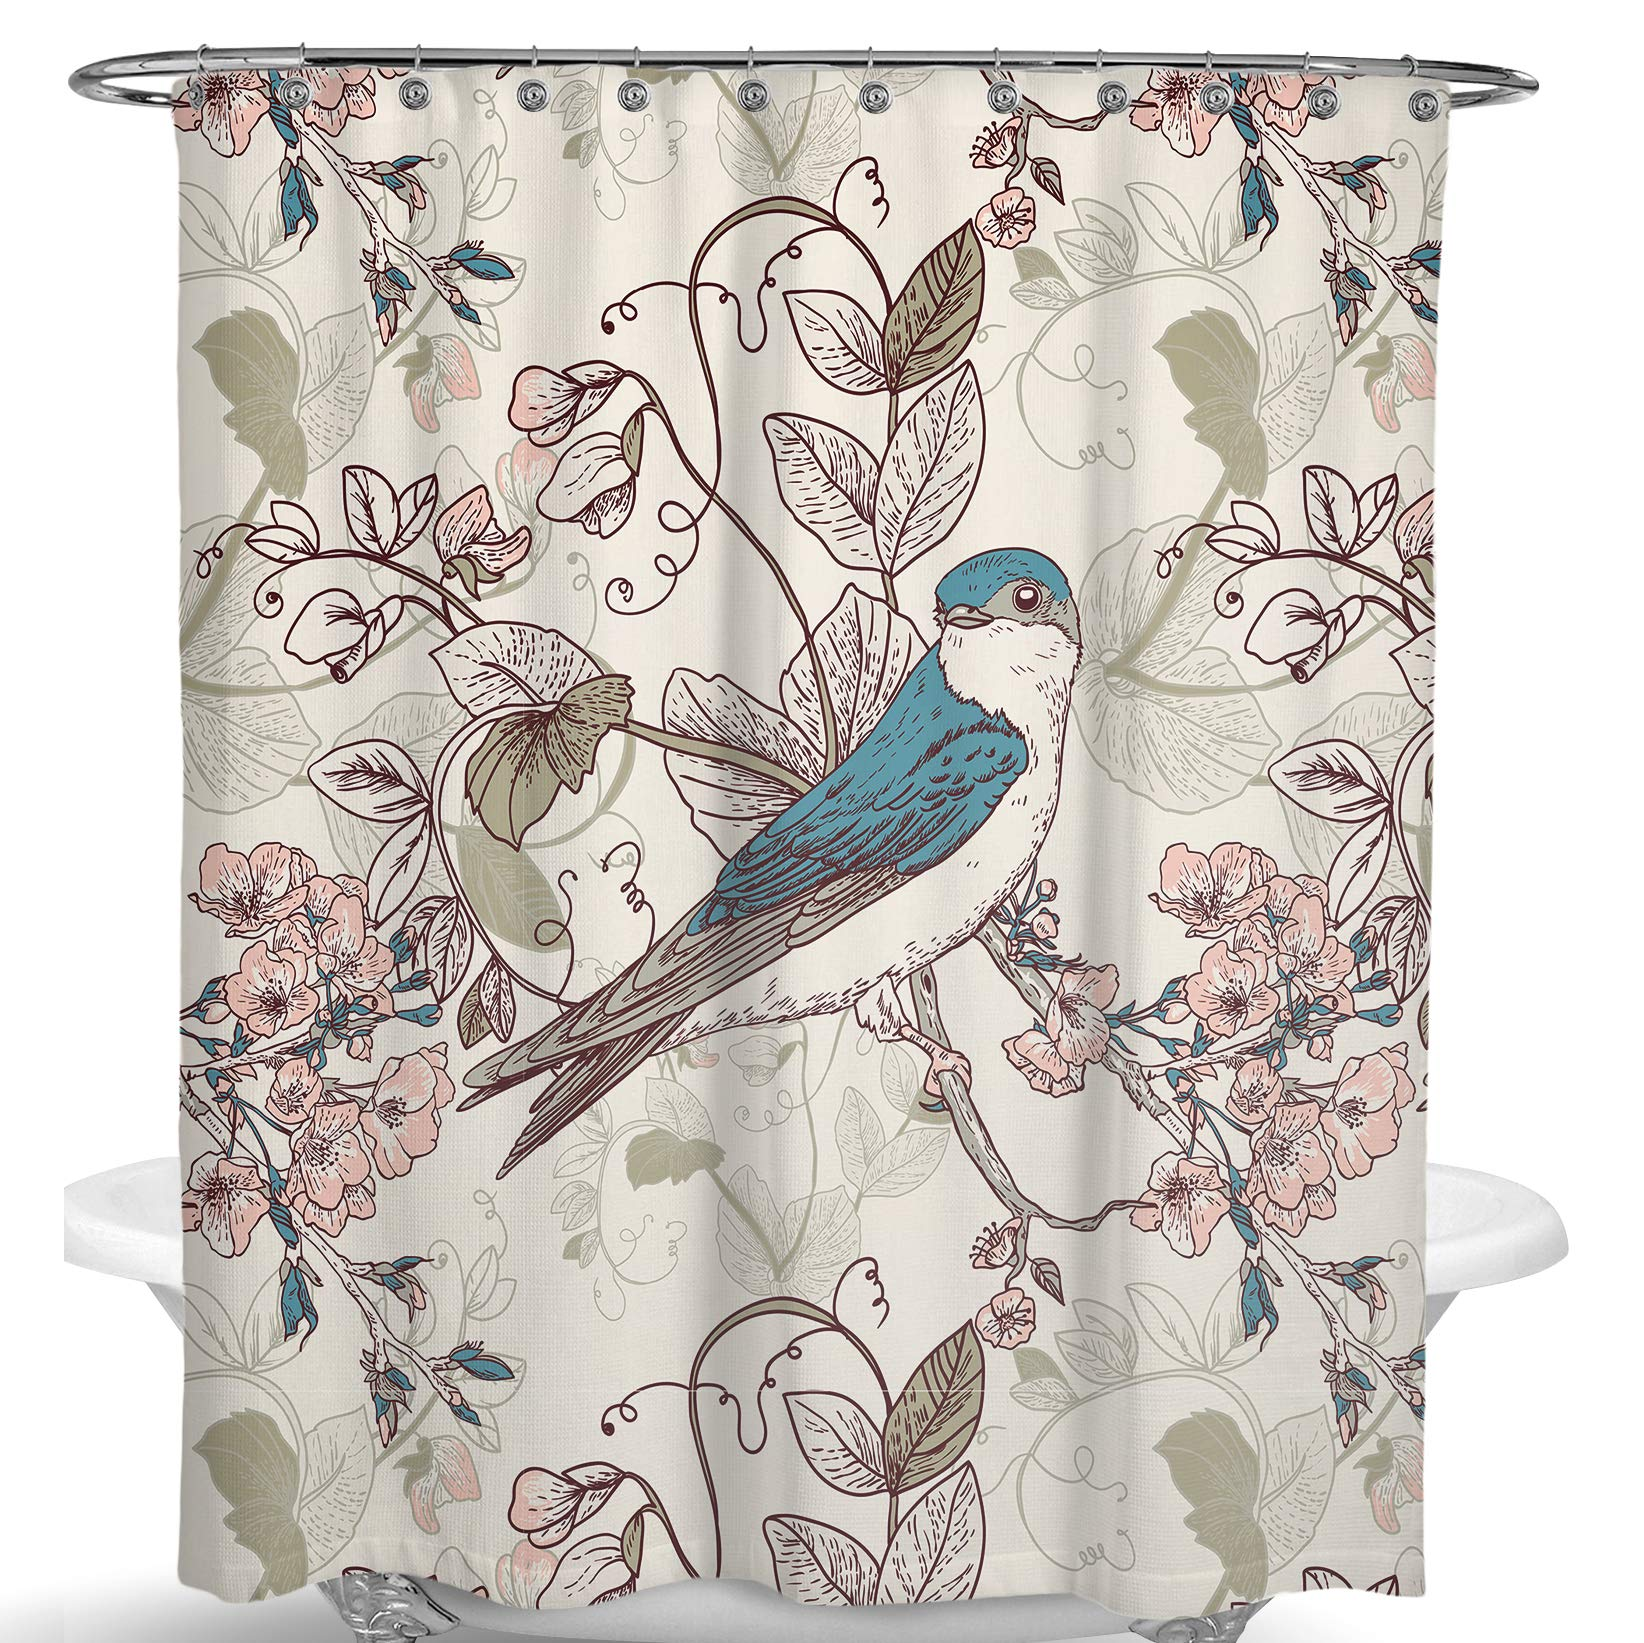 AooHome Stall Size 36x72 Inch Shower Curtain Liner Half Size Solid Shower Cur...